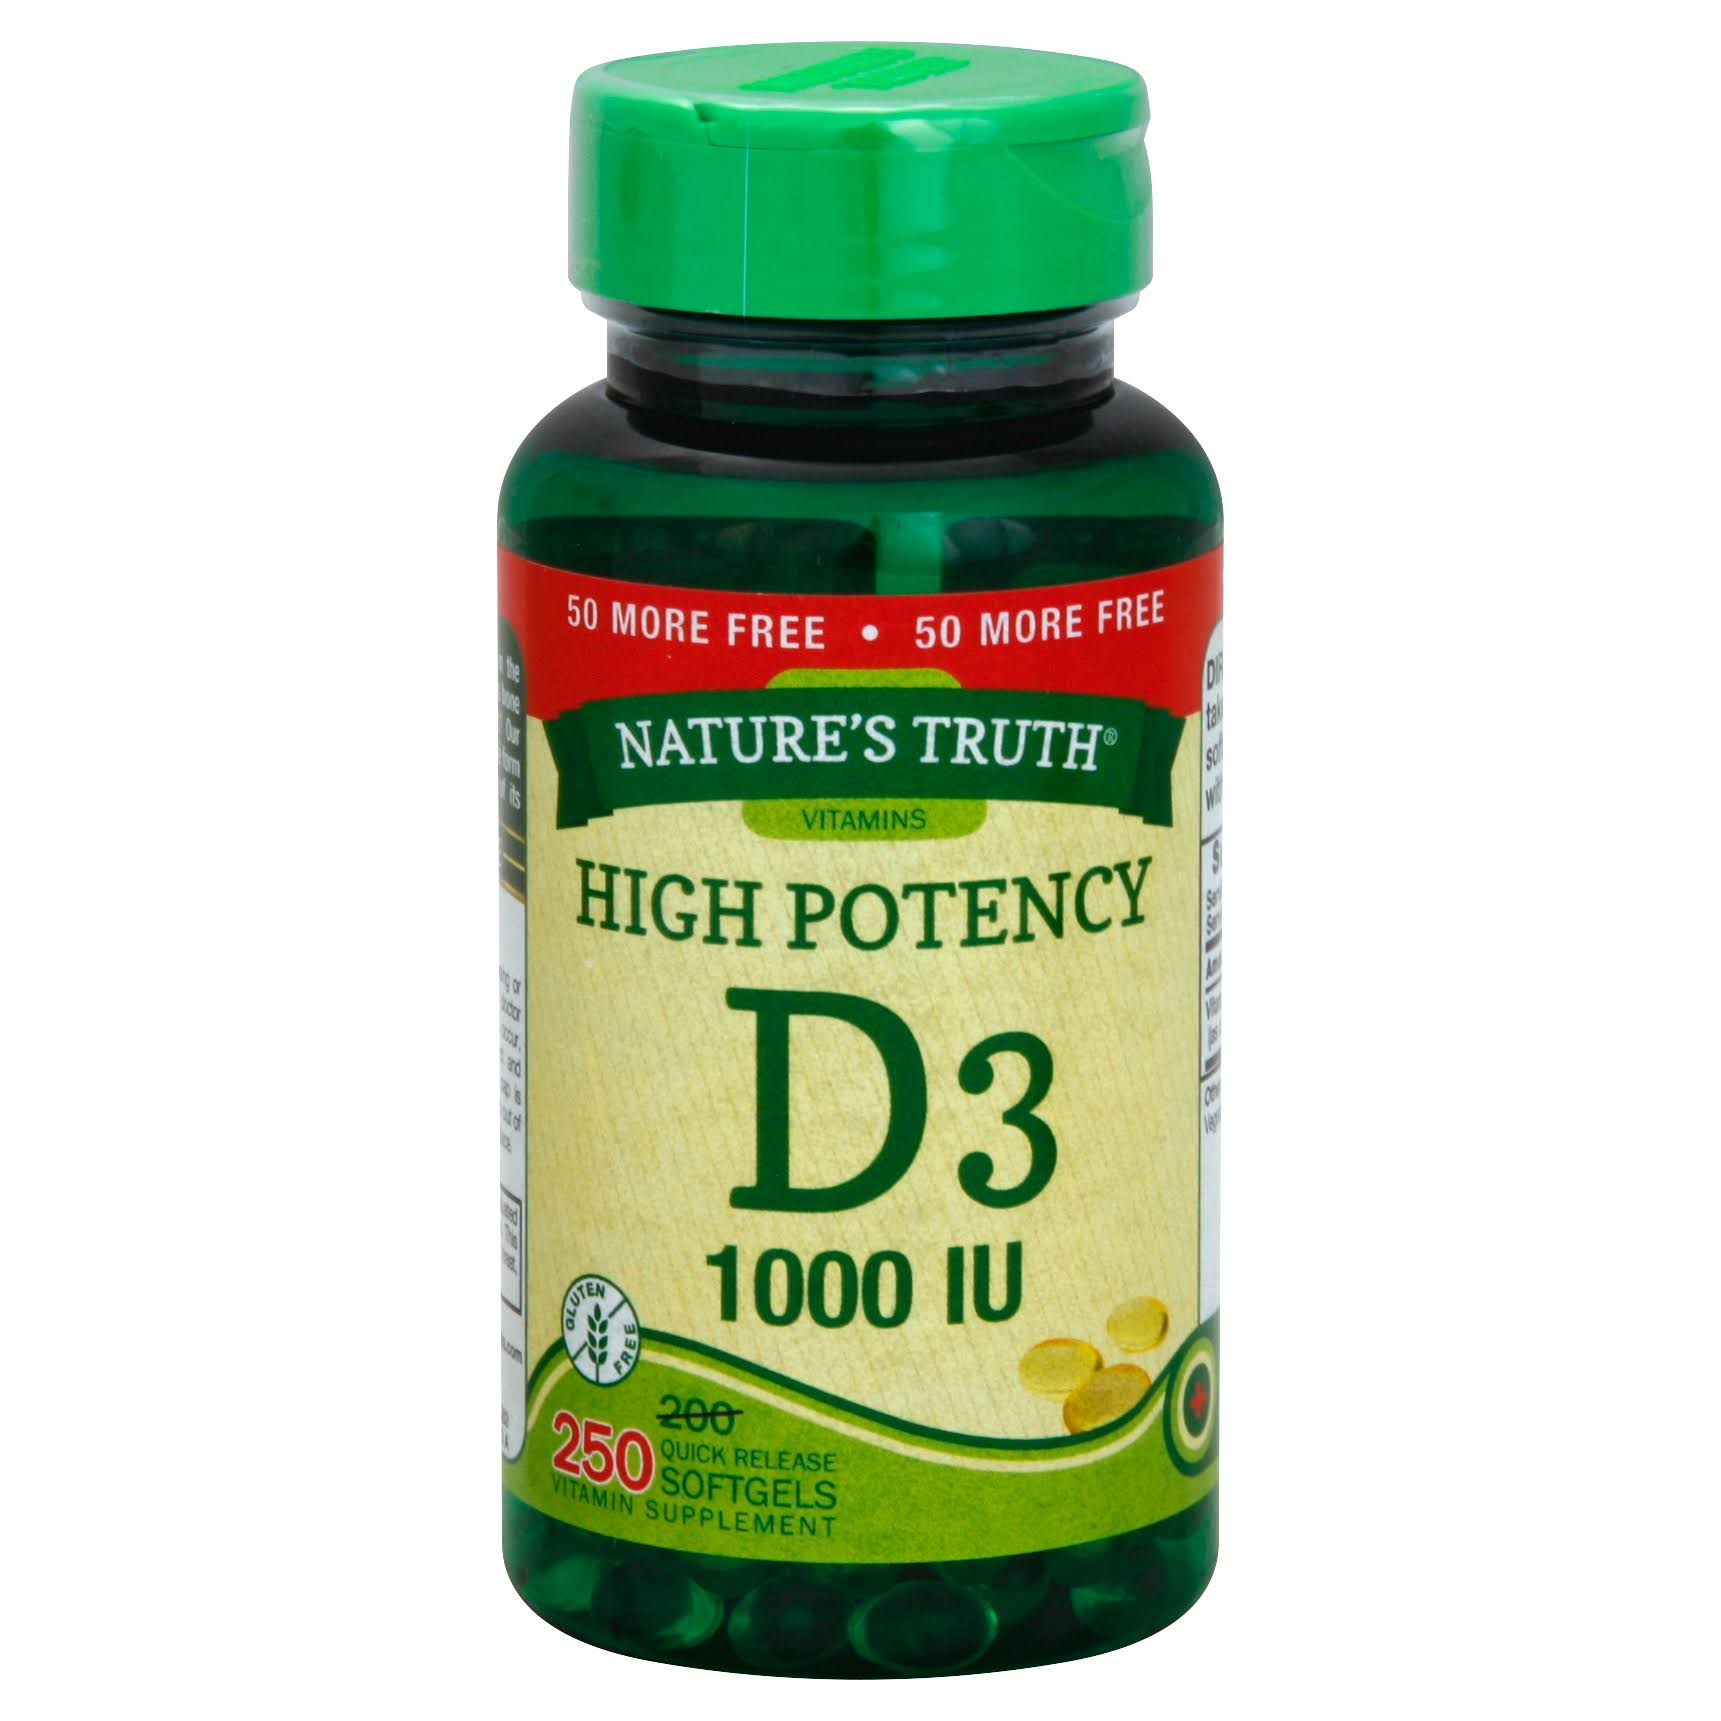 Natures Truth Vitamin D3, High Potency, 1000 IU, Quick Release Softgels - 250 softgels